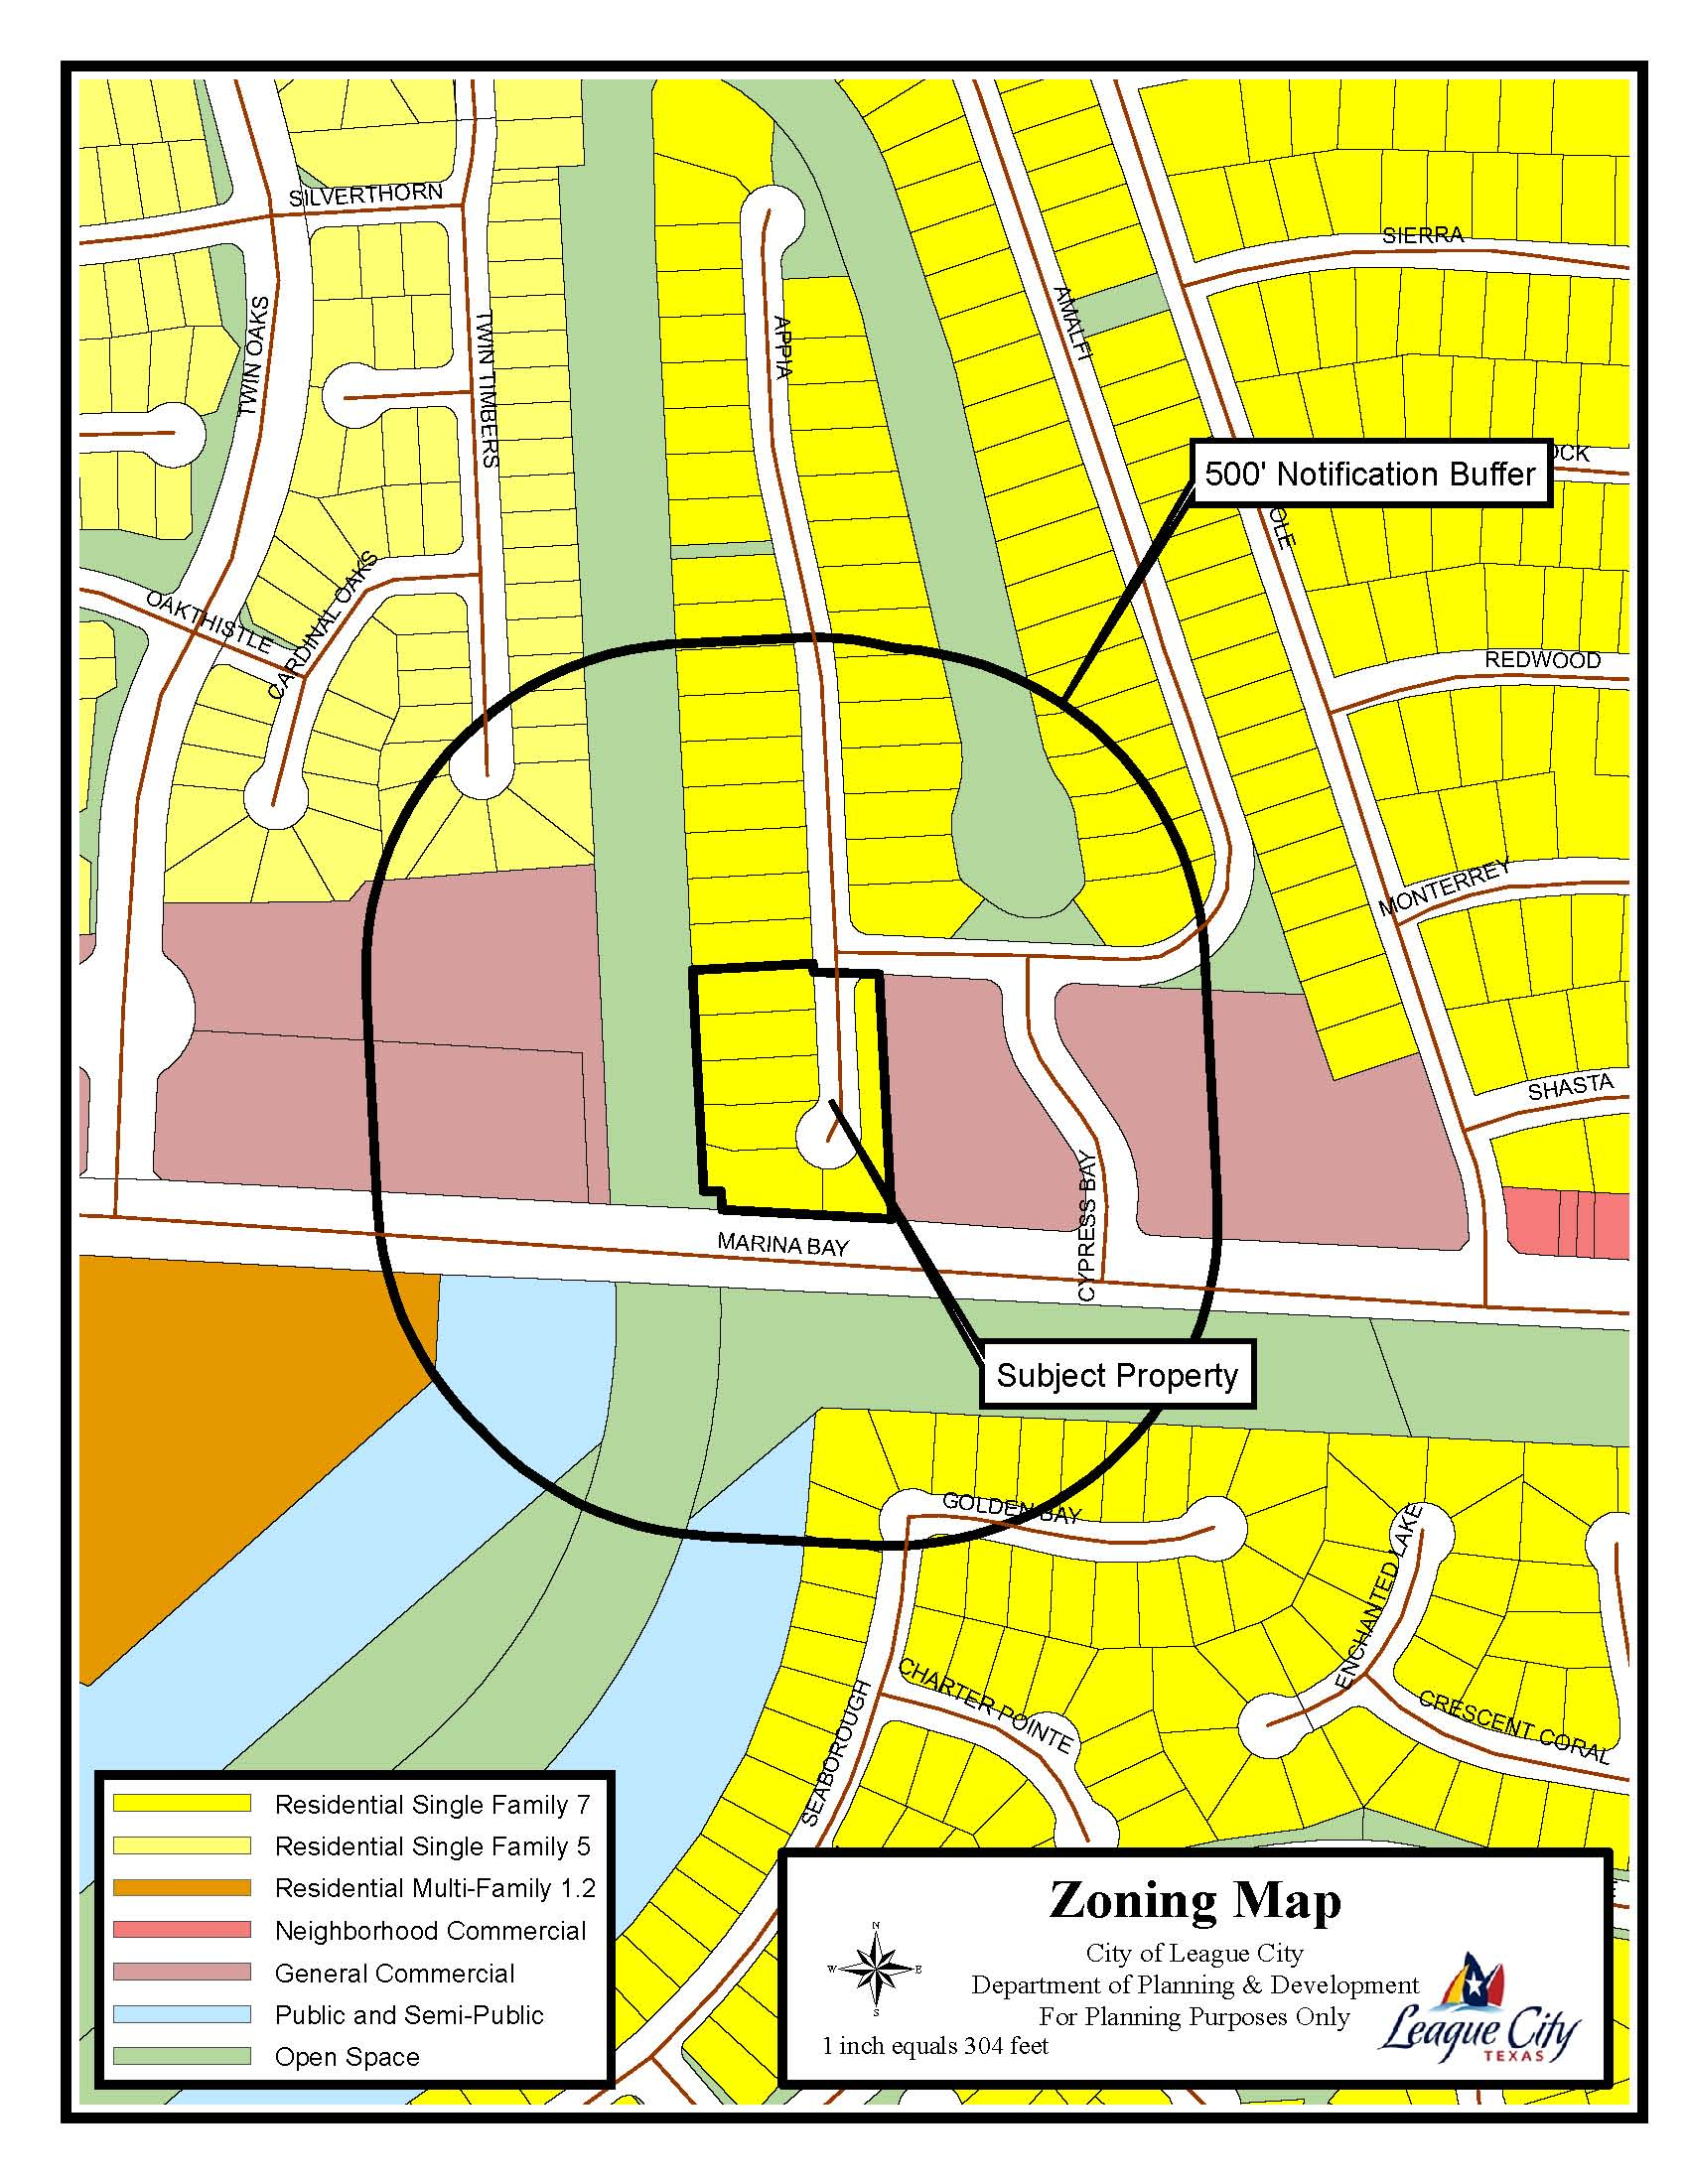 Z15-13 (Cypress Bay Commercial) zoning map